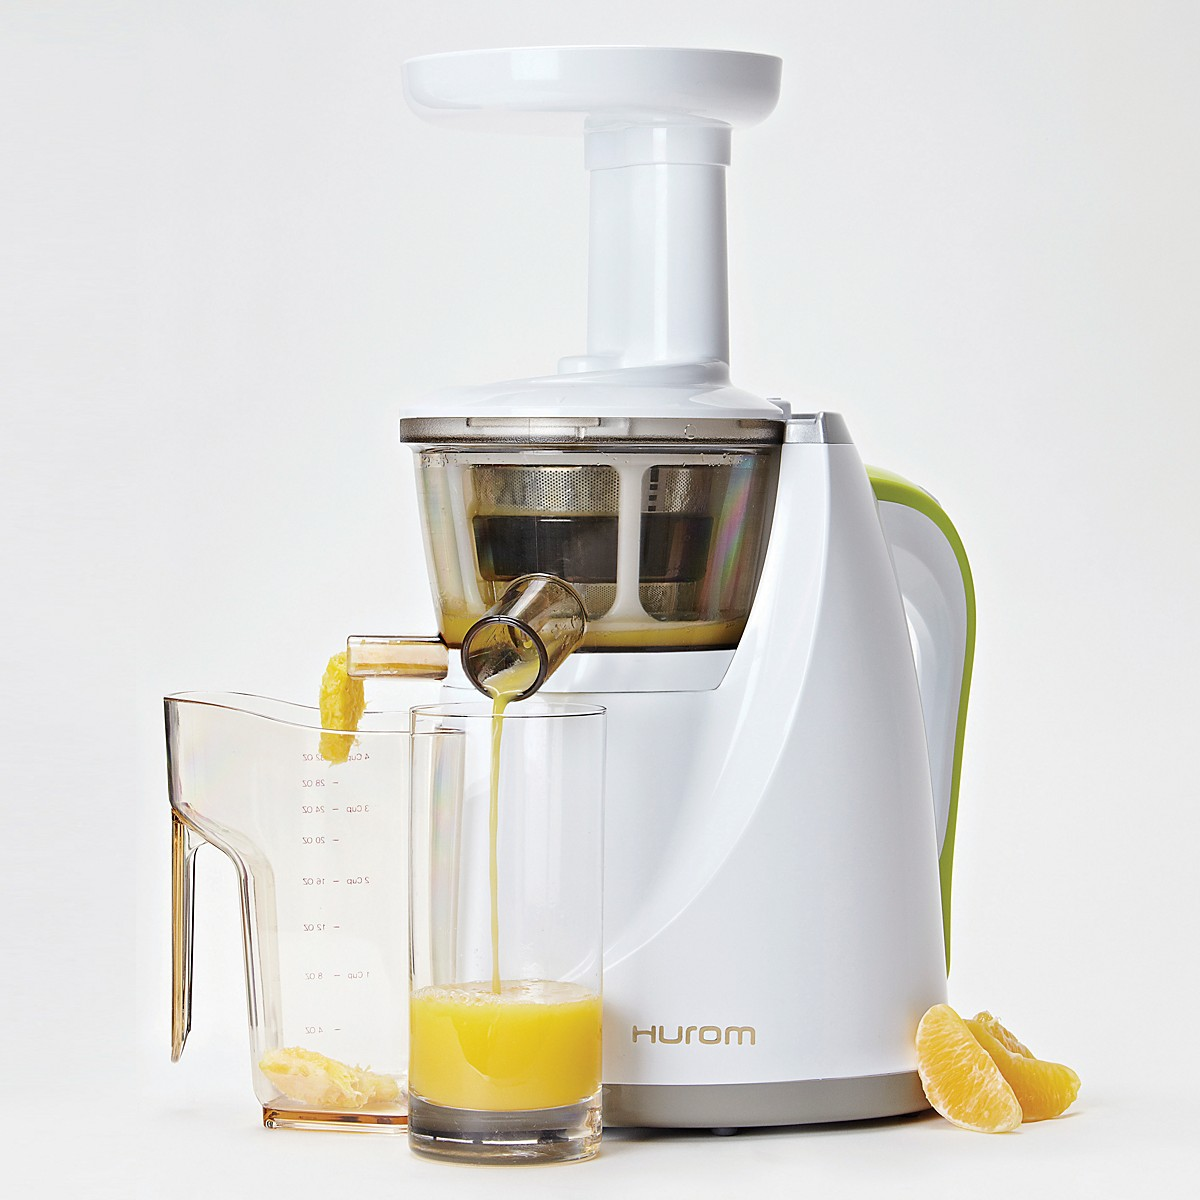 Hurom Slow Juicer Guarantee : The Wish List 2014 Our favourite kitchen appliances for chefs and avid home cooks